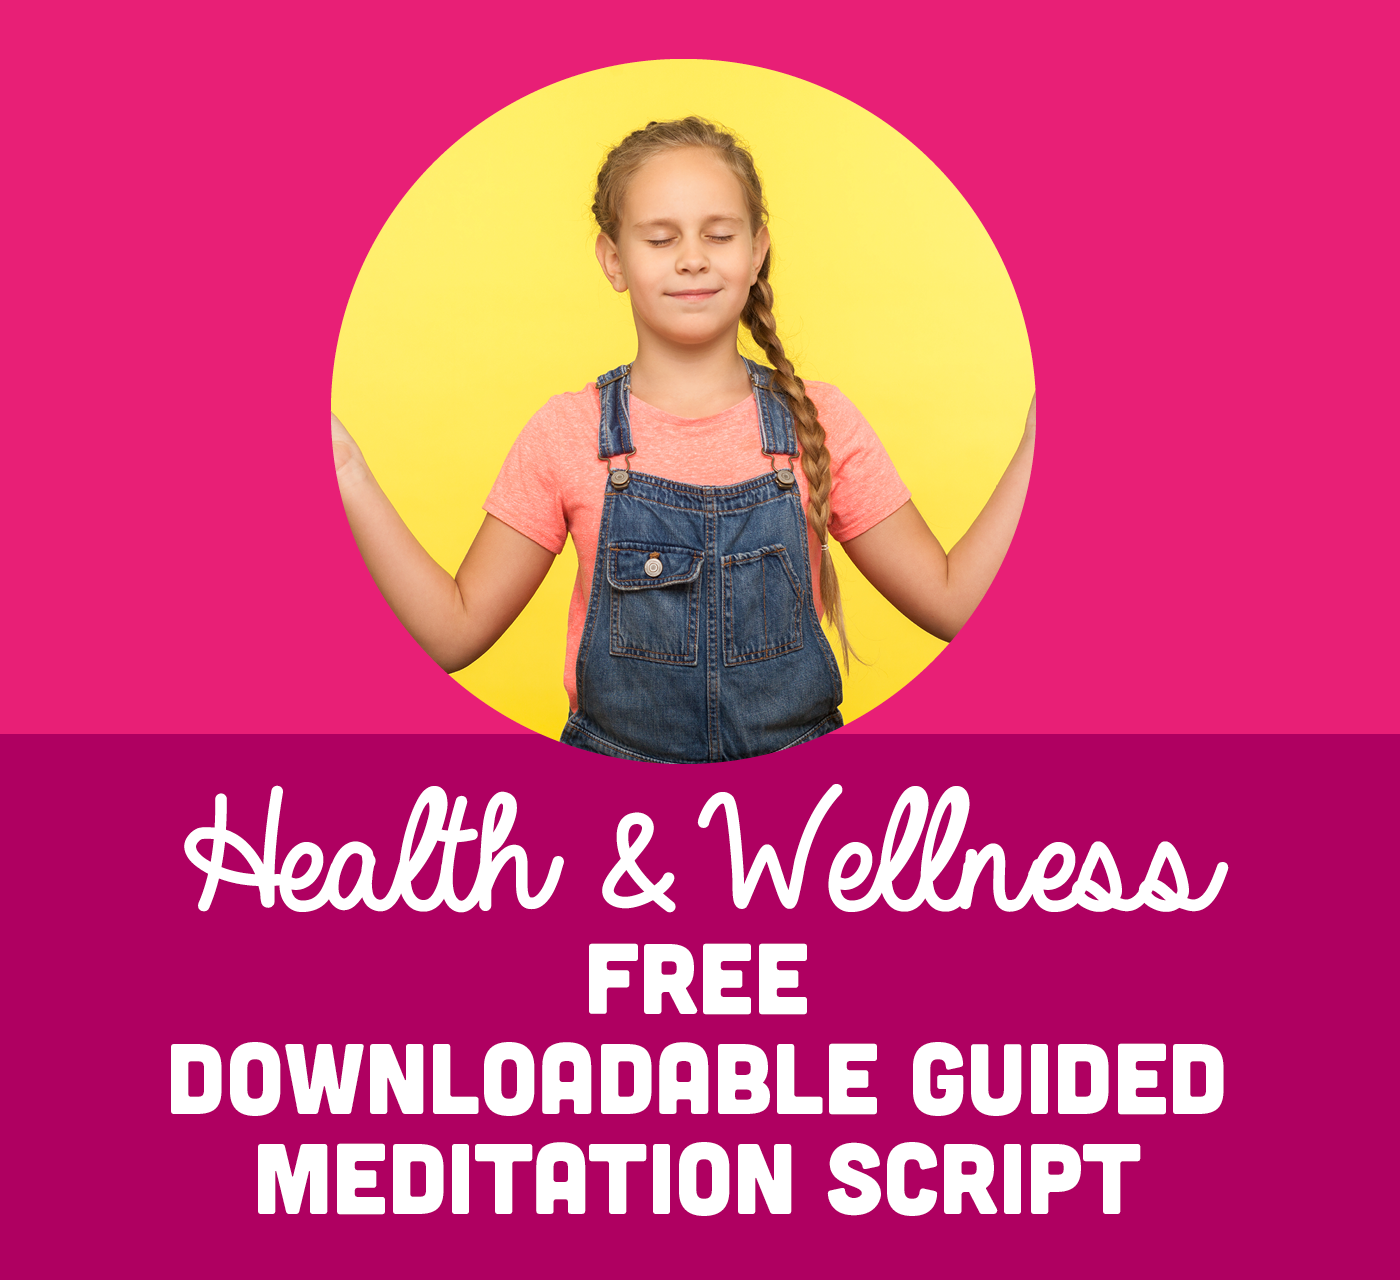 Free Downloadable Guided Meditation Script